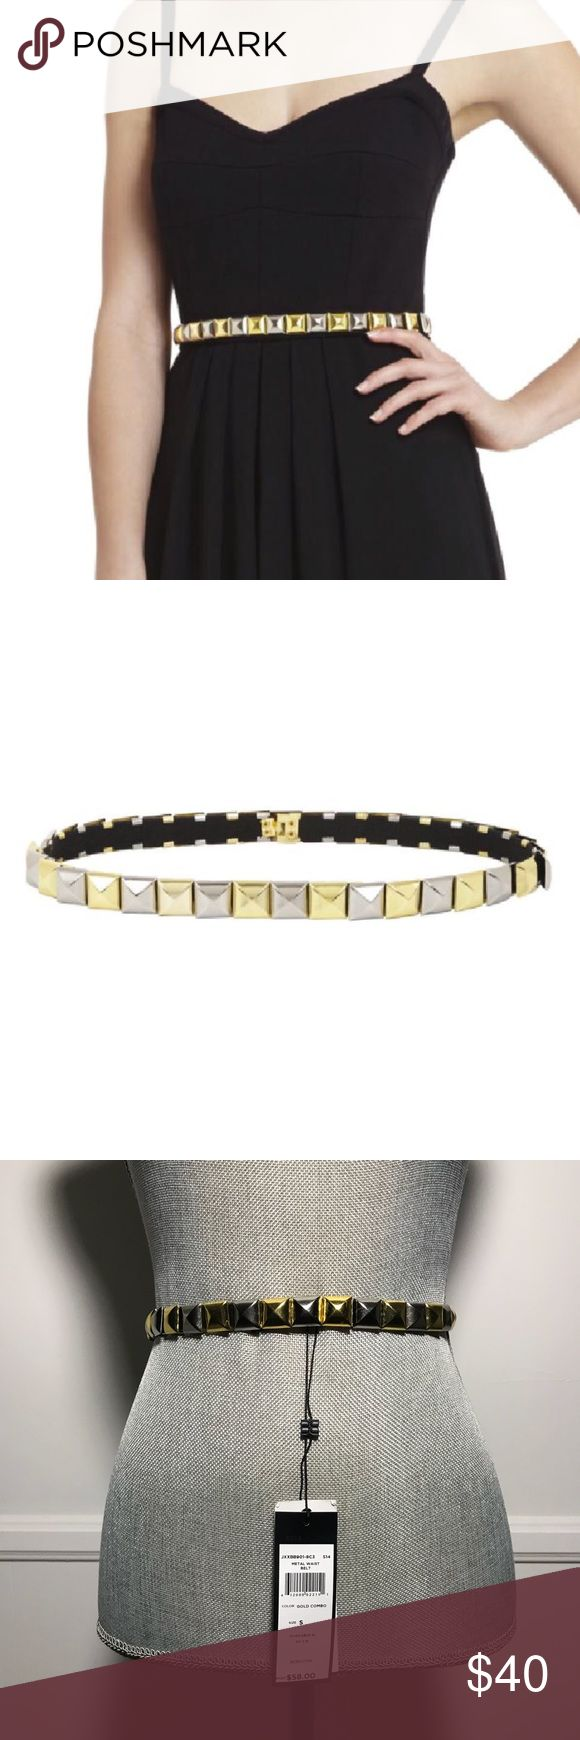 """BCBGMAXAZRIA  Pyramid Stud Elastic Waist Belt S Embellished with smooth pyramid studs on an elastic band, this gorgeous belt serves as a comfortable, on-trend way to edge up any look. Size S. Unstretched it is 26"""" long but can stretch as much as 29"""" comfortably. Great addition to any LBD. Gold and silver  Elasticized waist belt. Contrast pyramid studs throughout. Hook-and-eye closure. Nickel Alloy, Elastic. Imported. BCBGMaxAzria Accessories Belts"""